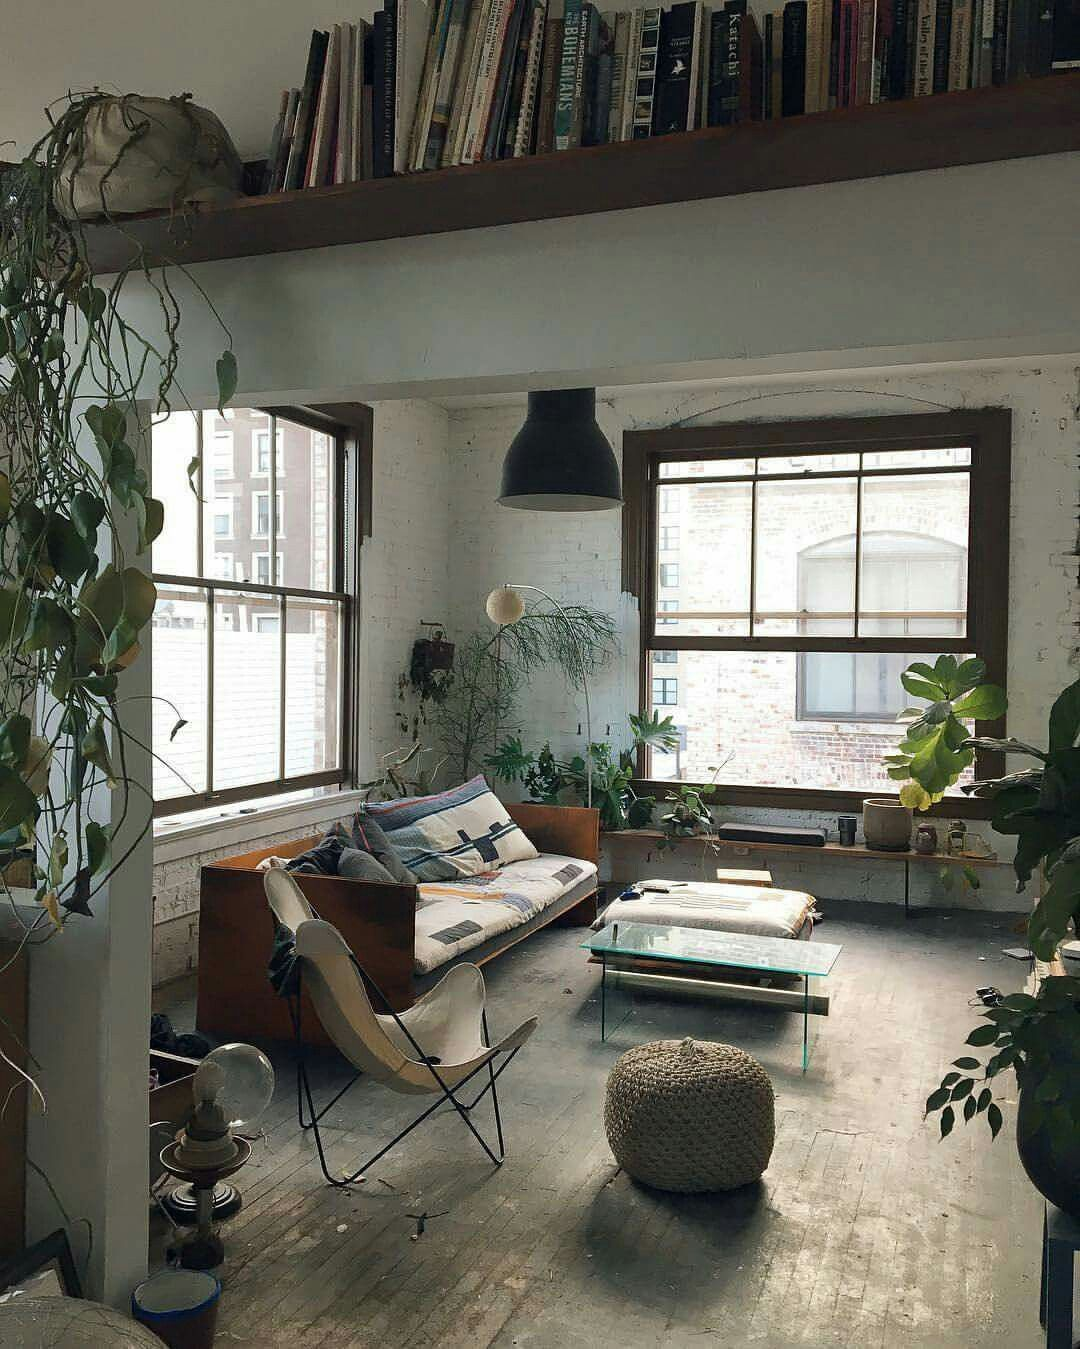 Above exterior window decor  pin by noamei on interiorexterior  pinterest  interiors